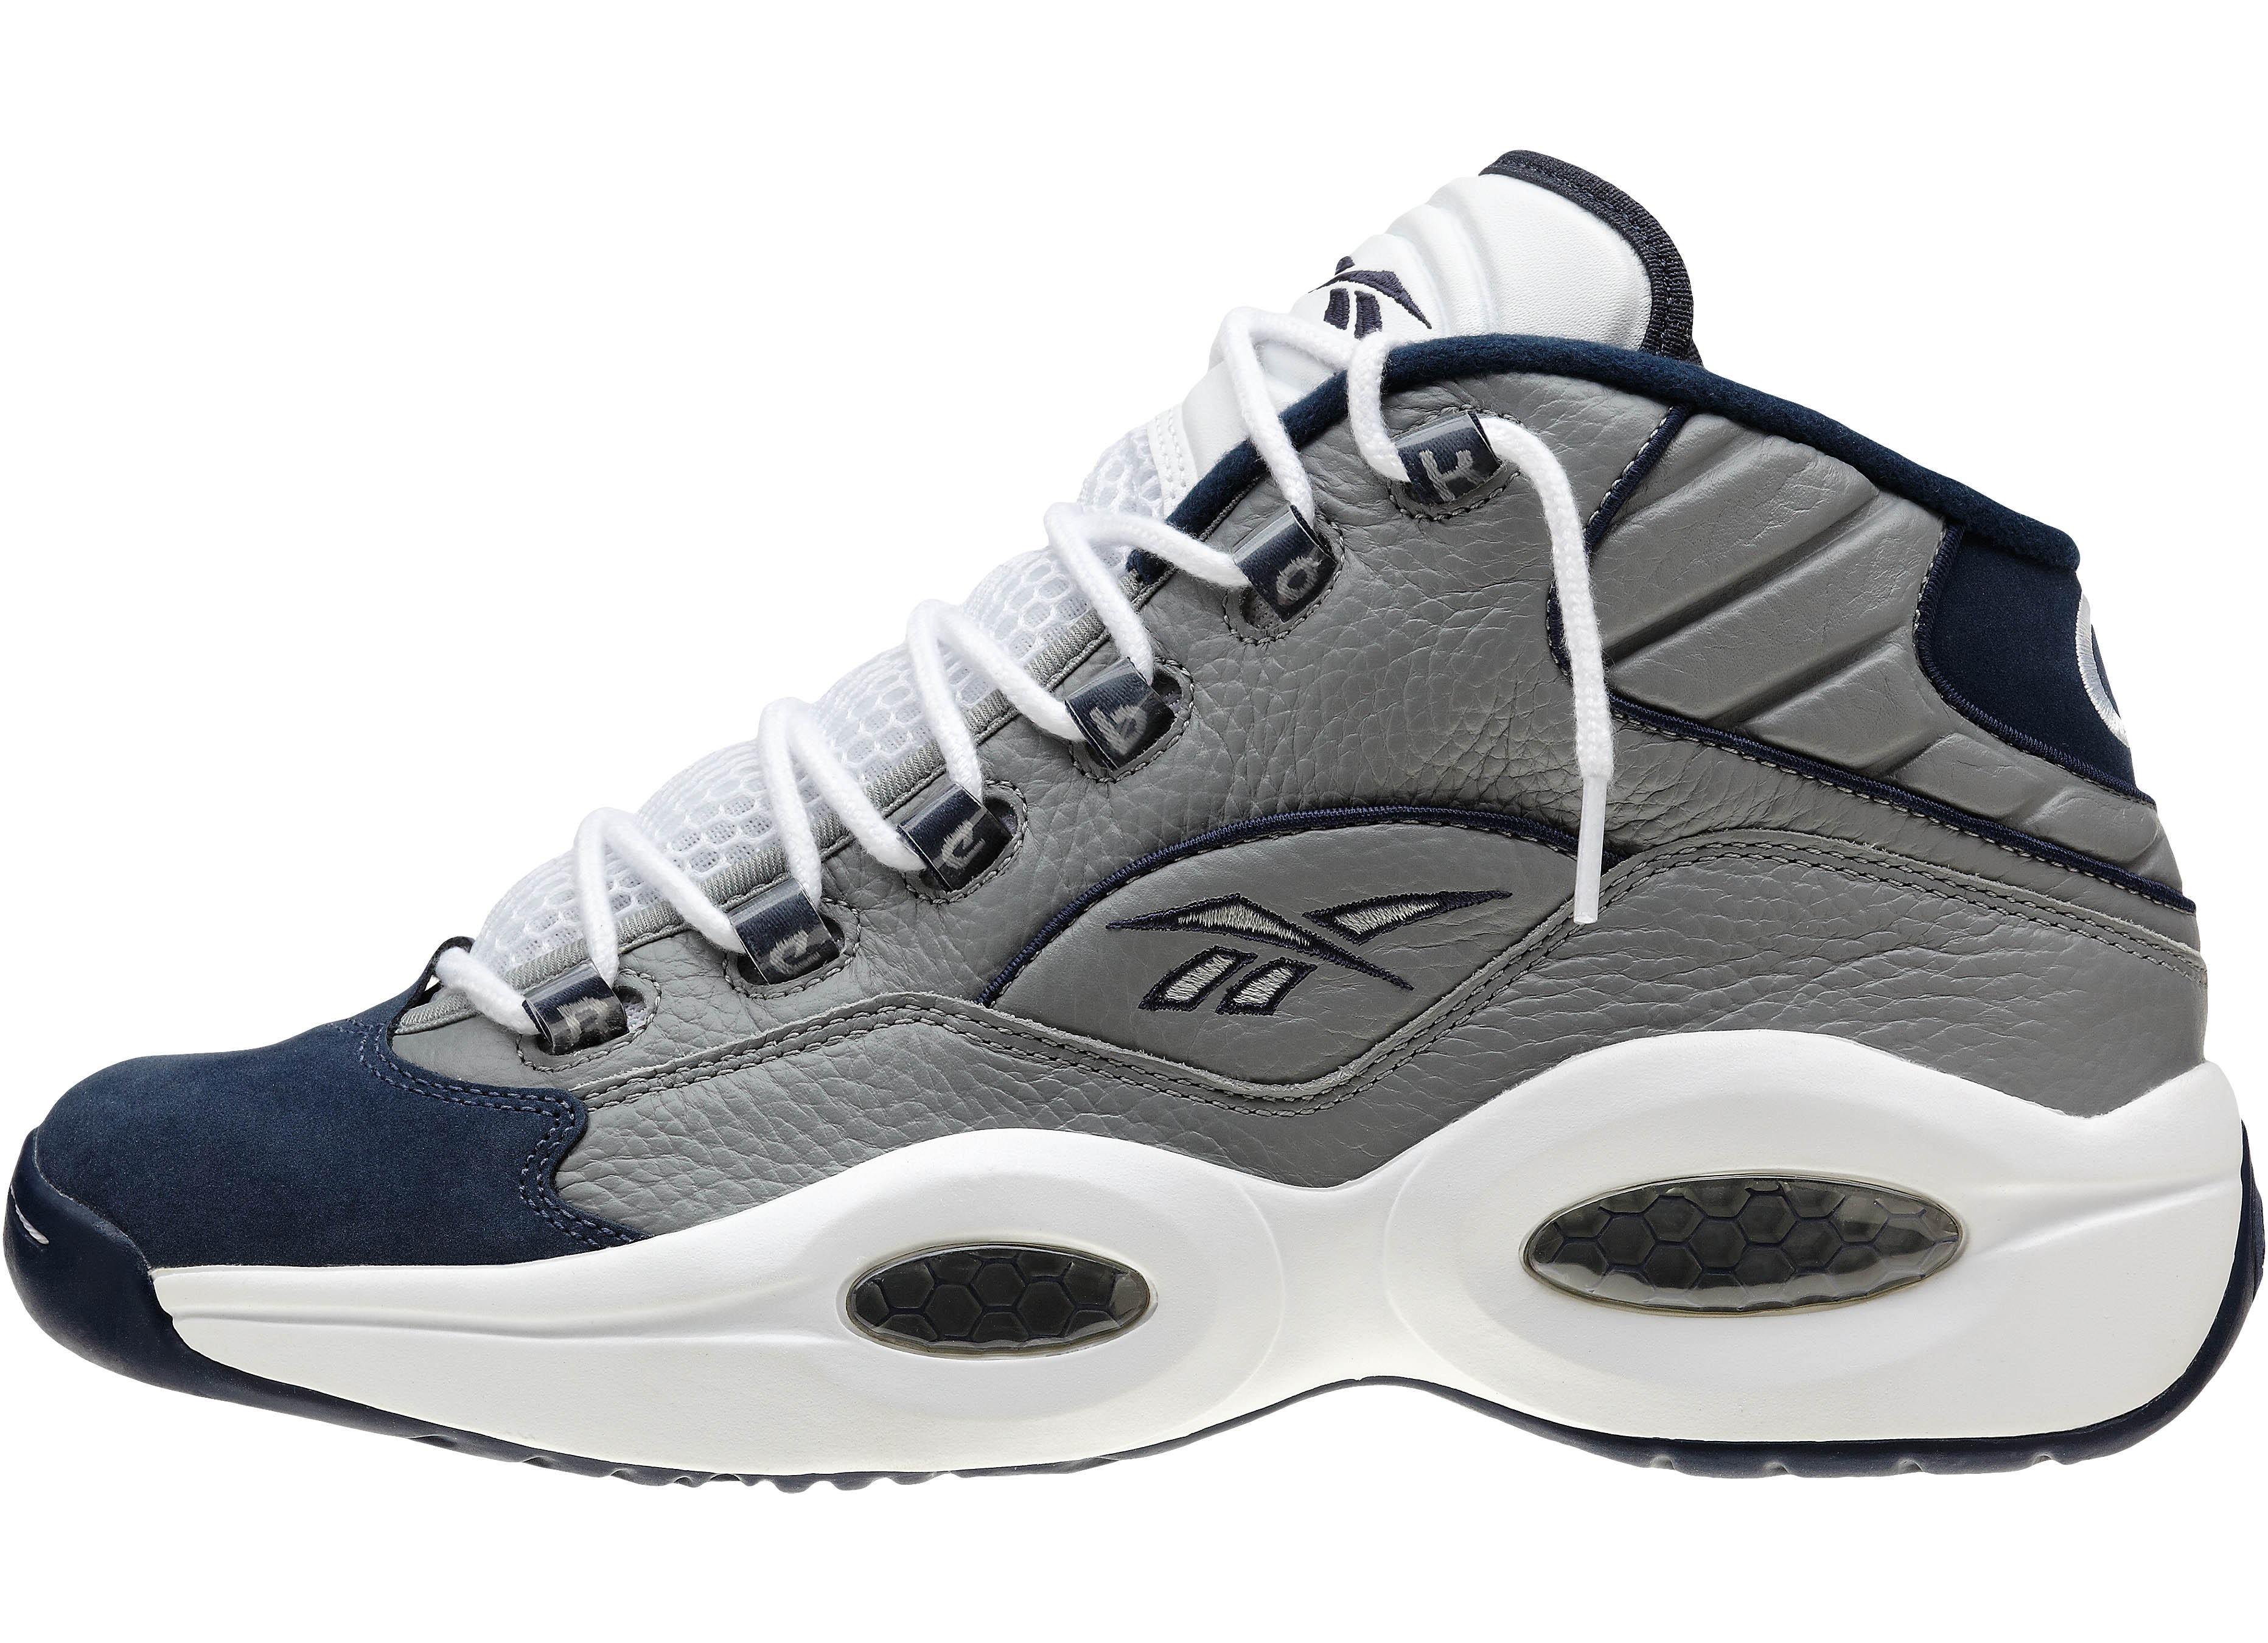 6acbfbf6374f02 The flat grey athletic navy white Question Mid and the white navy Answer IV  will drop at Foot Locker